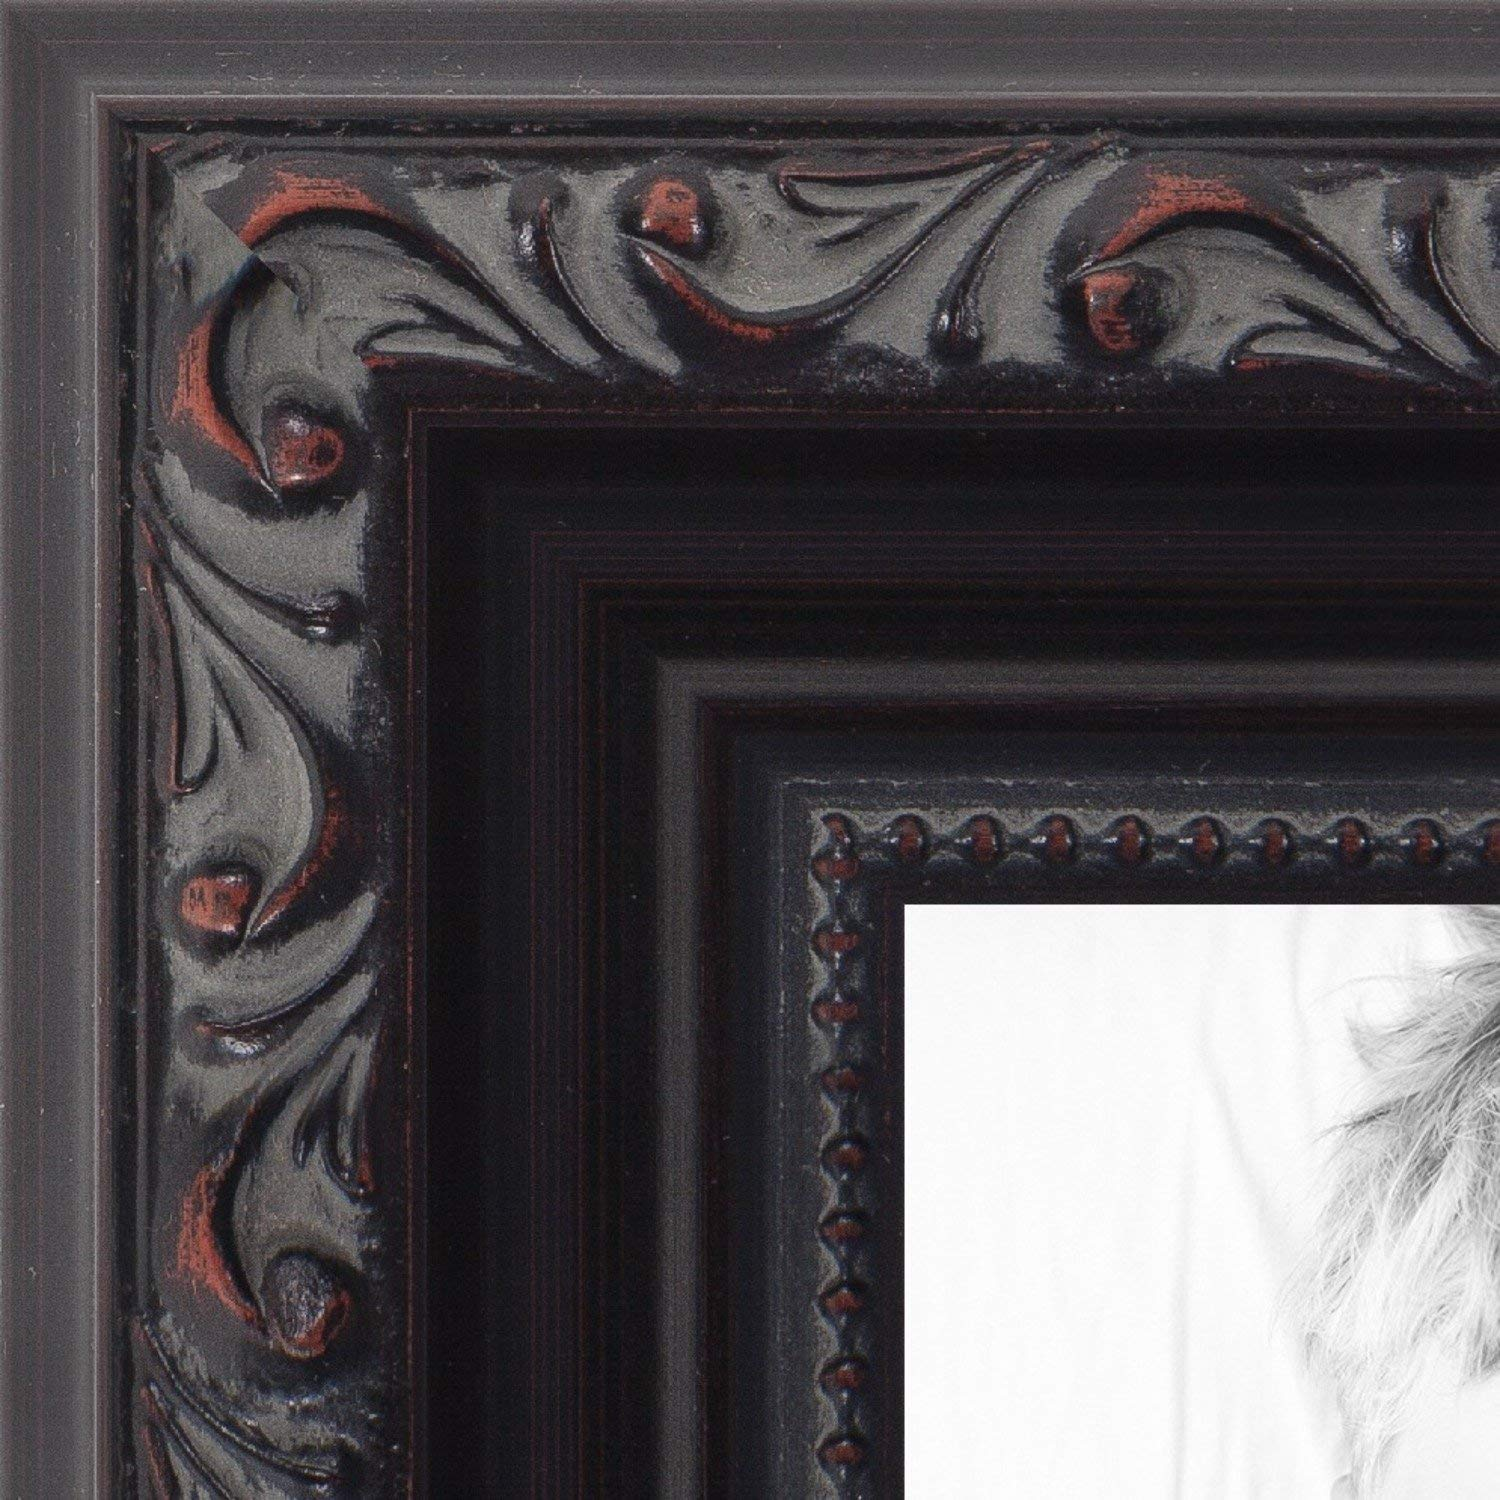 Get Quotations Arttoframes 22x34 Inch Black With Beads Wood Picture Frame 2womd10188